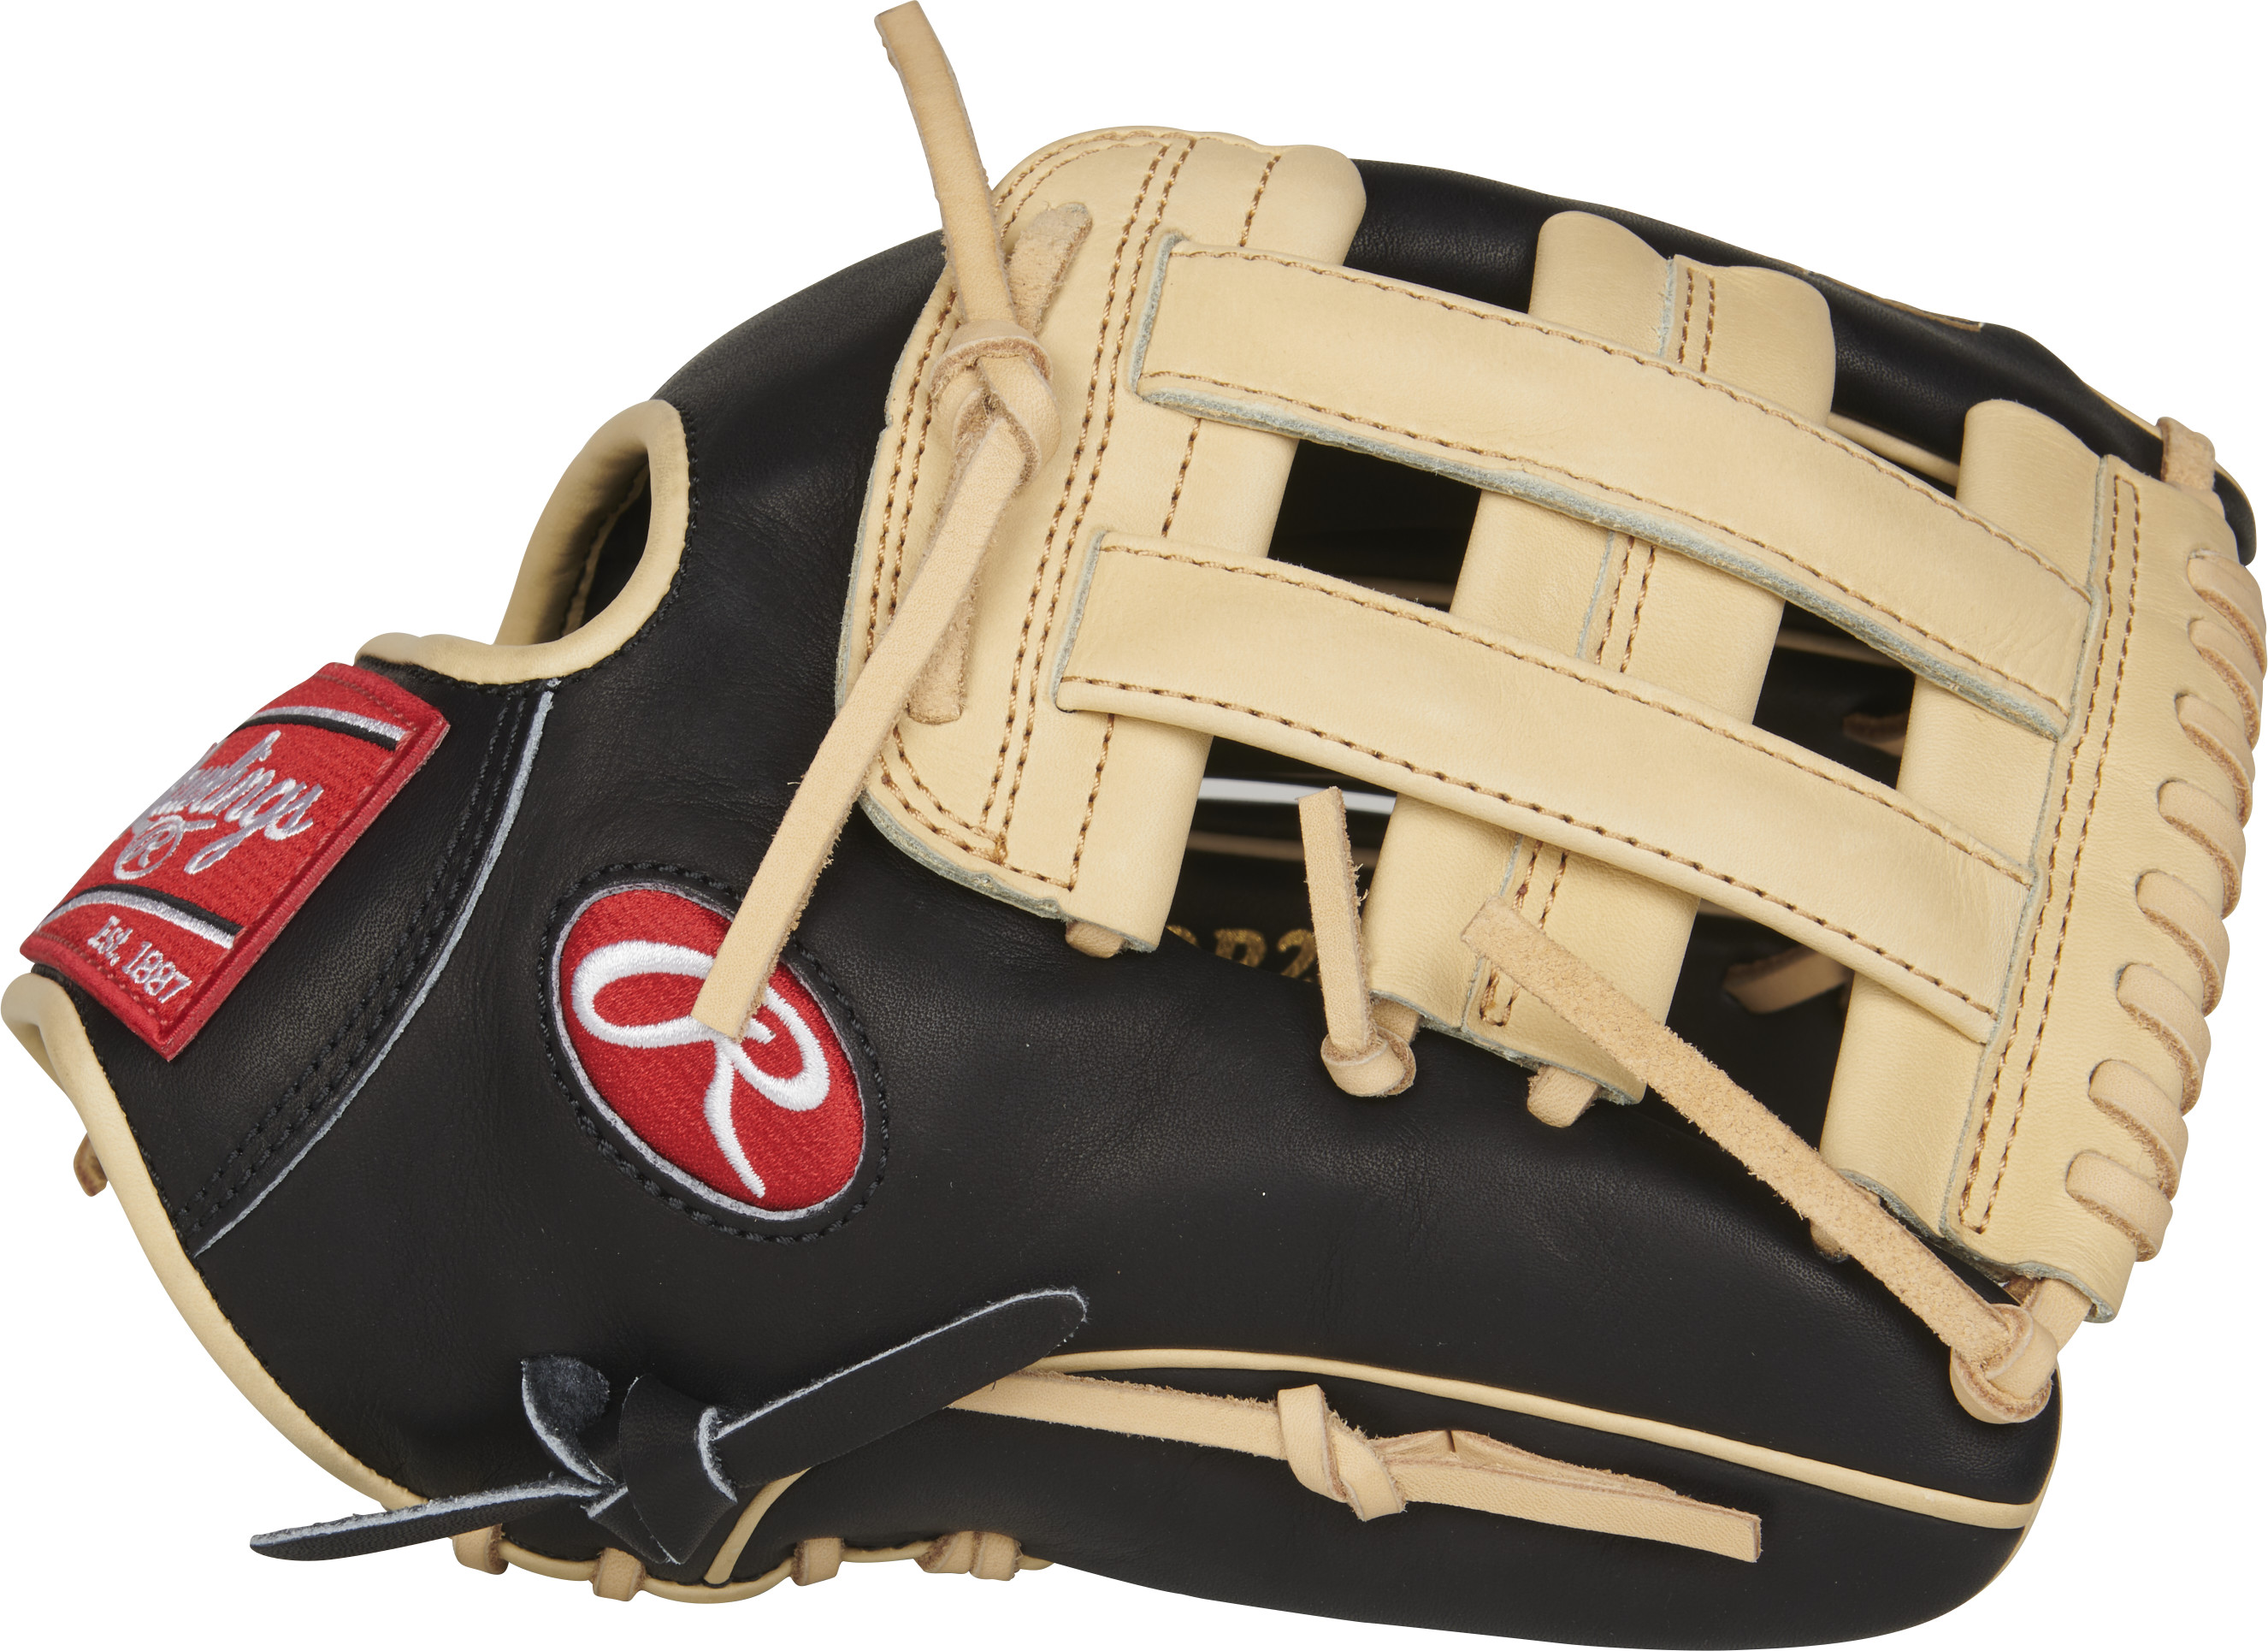 http://www.bestbatdeals.com/images/gloves/rawlings/PROR207-6BC-3.jpg